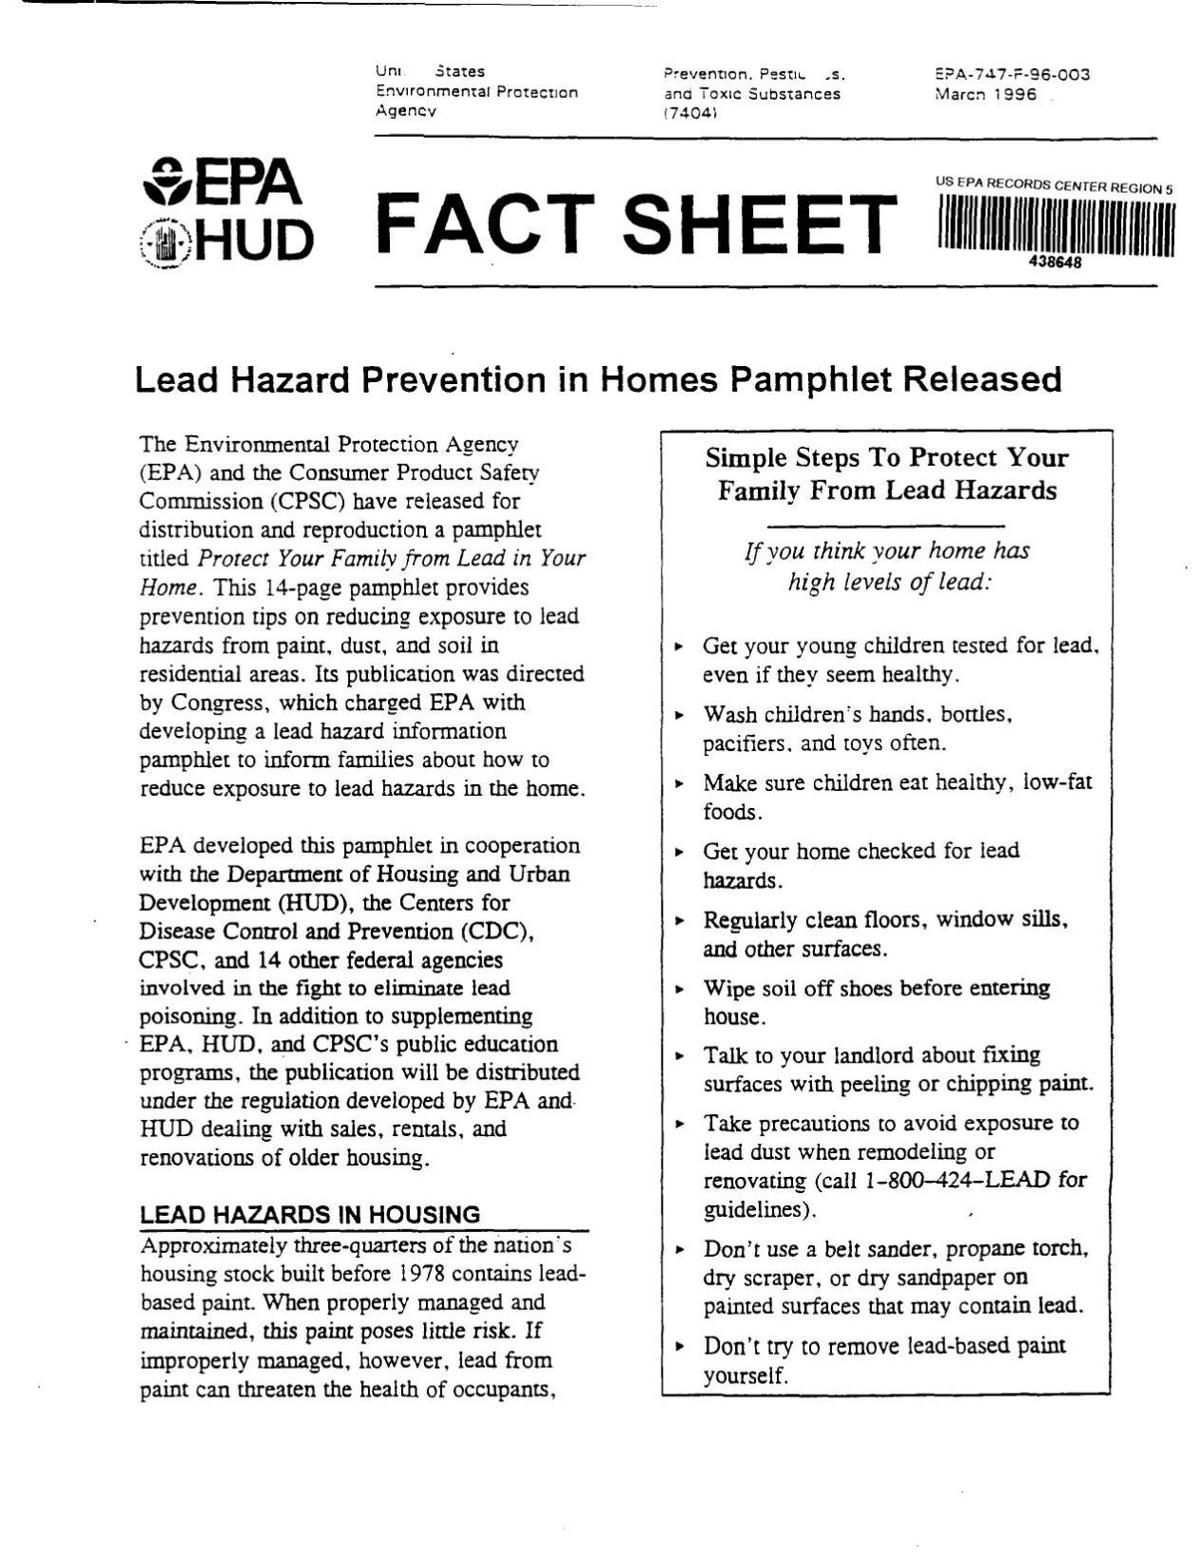 1996 EPA fact sheet on USS Lead